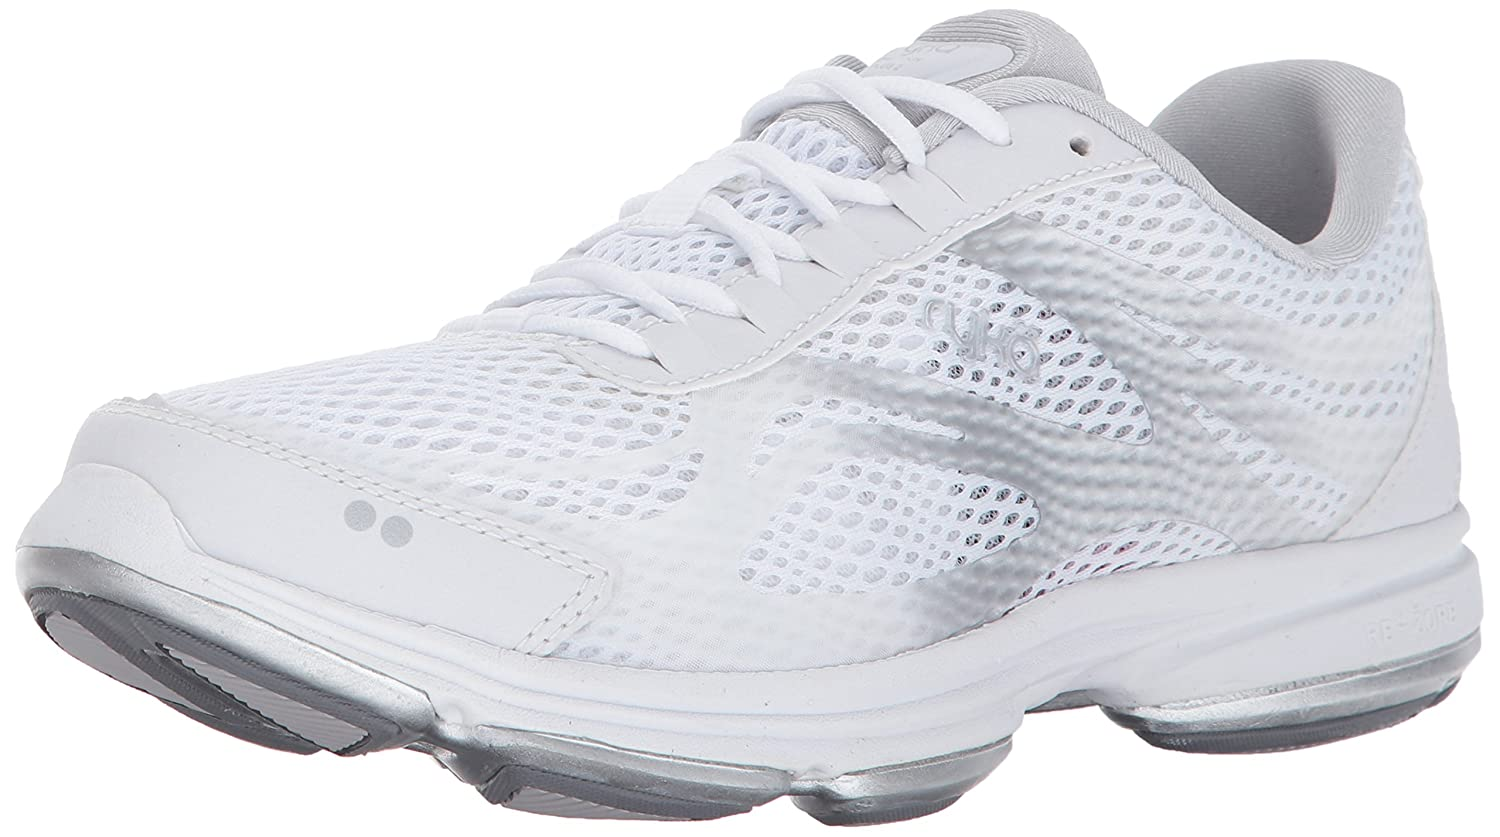 Ryka Women's Devo Plus 2 Walking Shoe B01NB15NBQ 9.5 W US|White/Blue